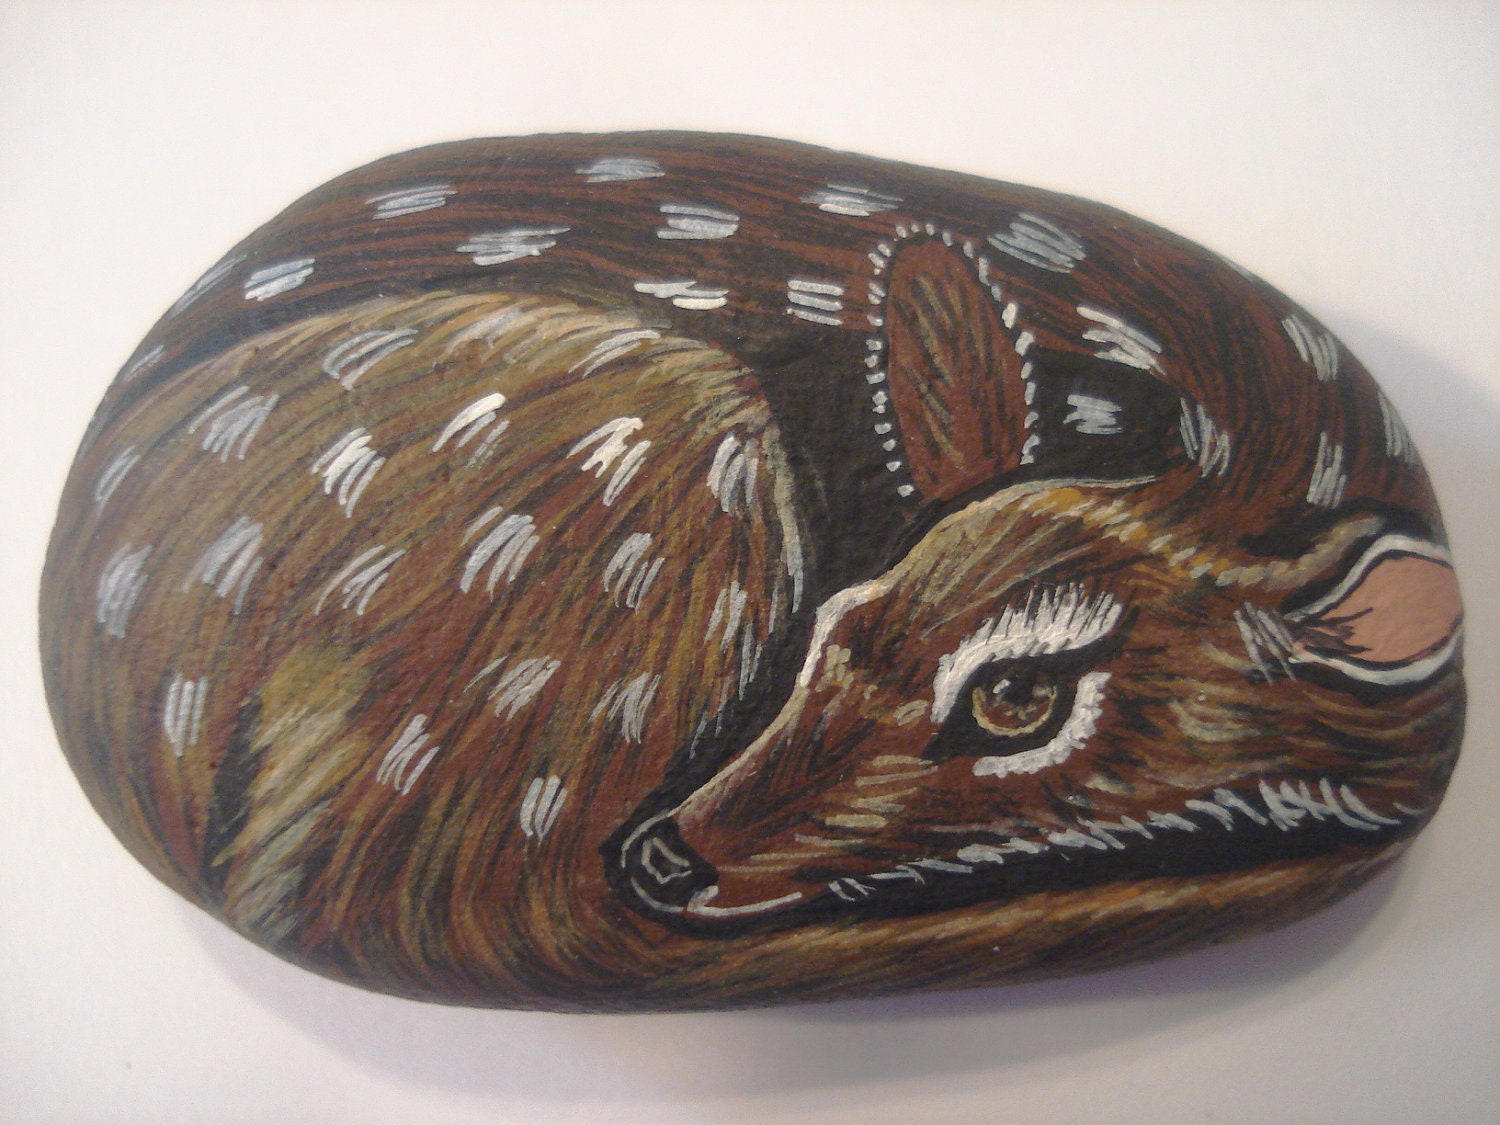 Fawn deer hand painted on a stone - pet rock. - wildstonepainter